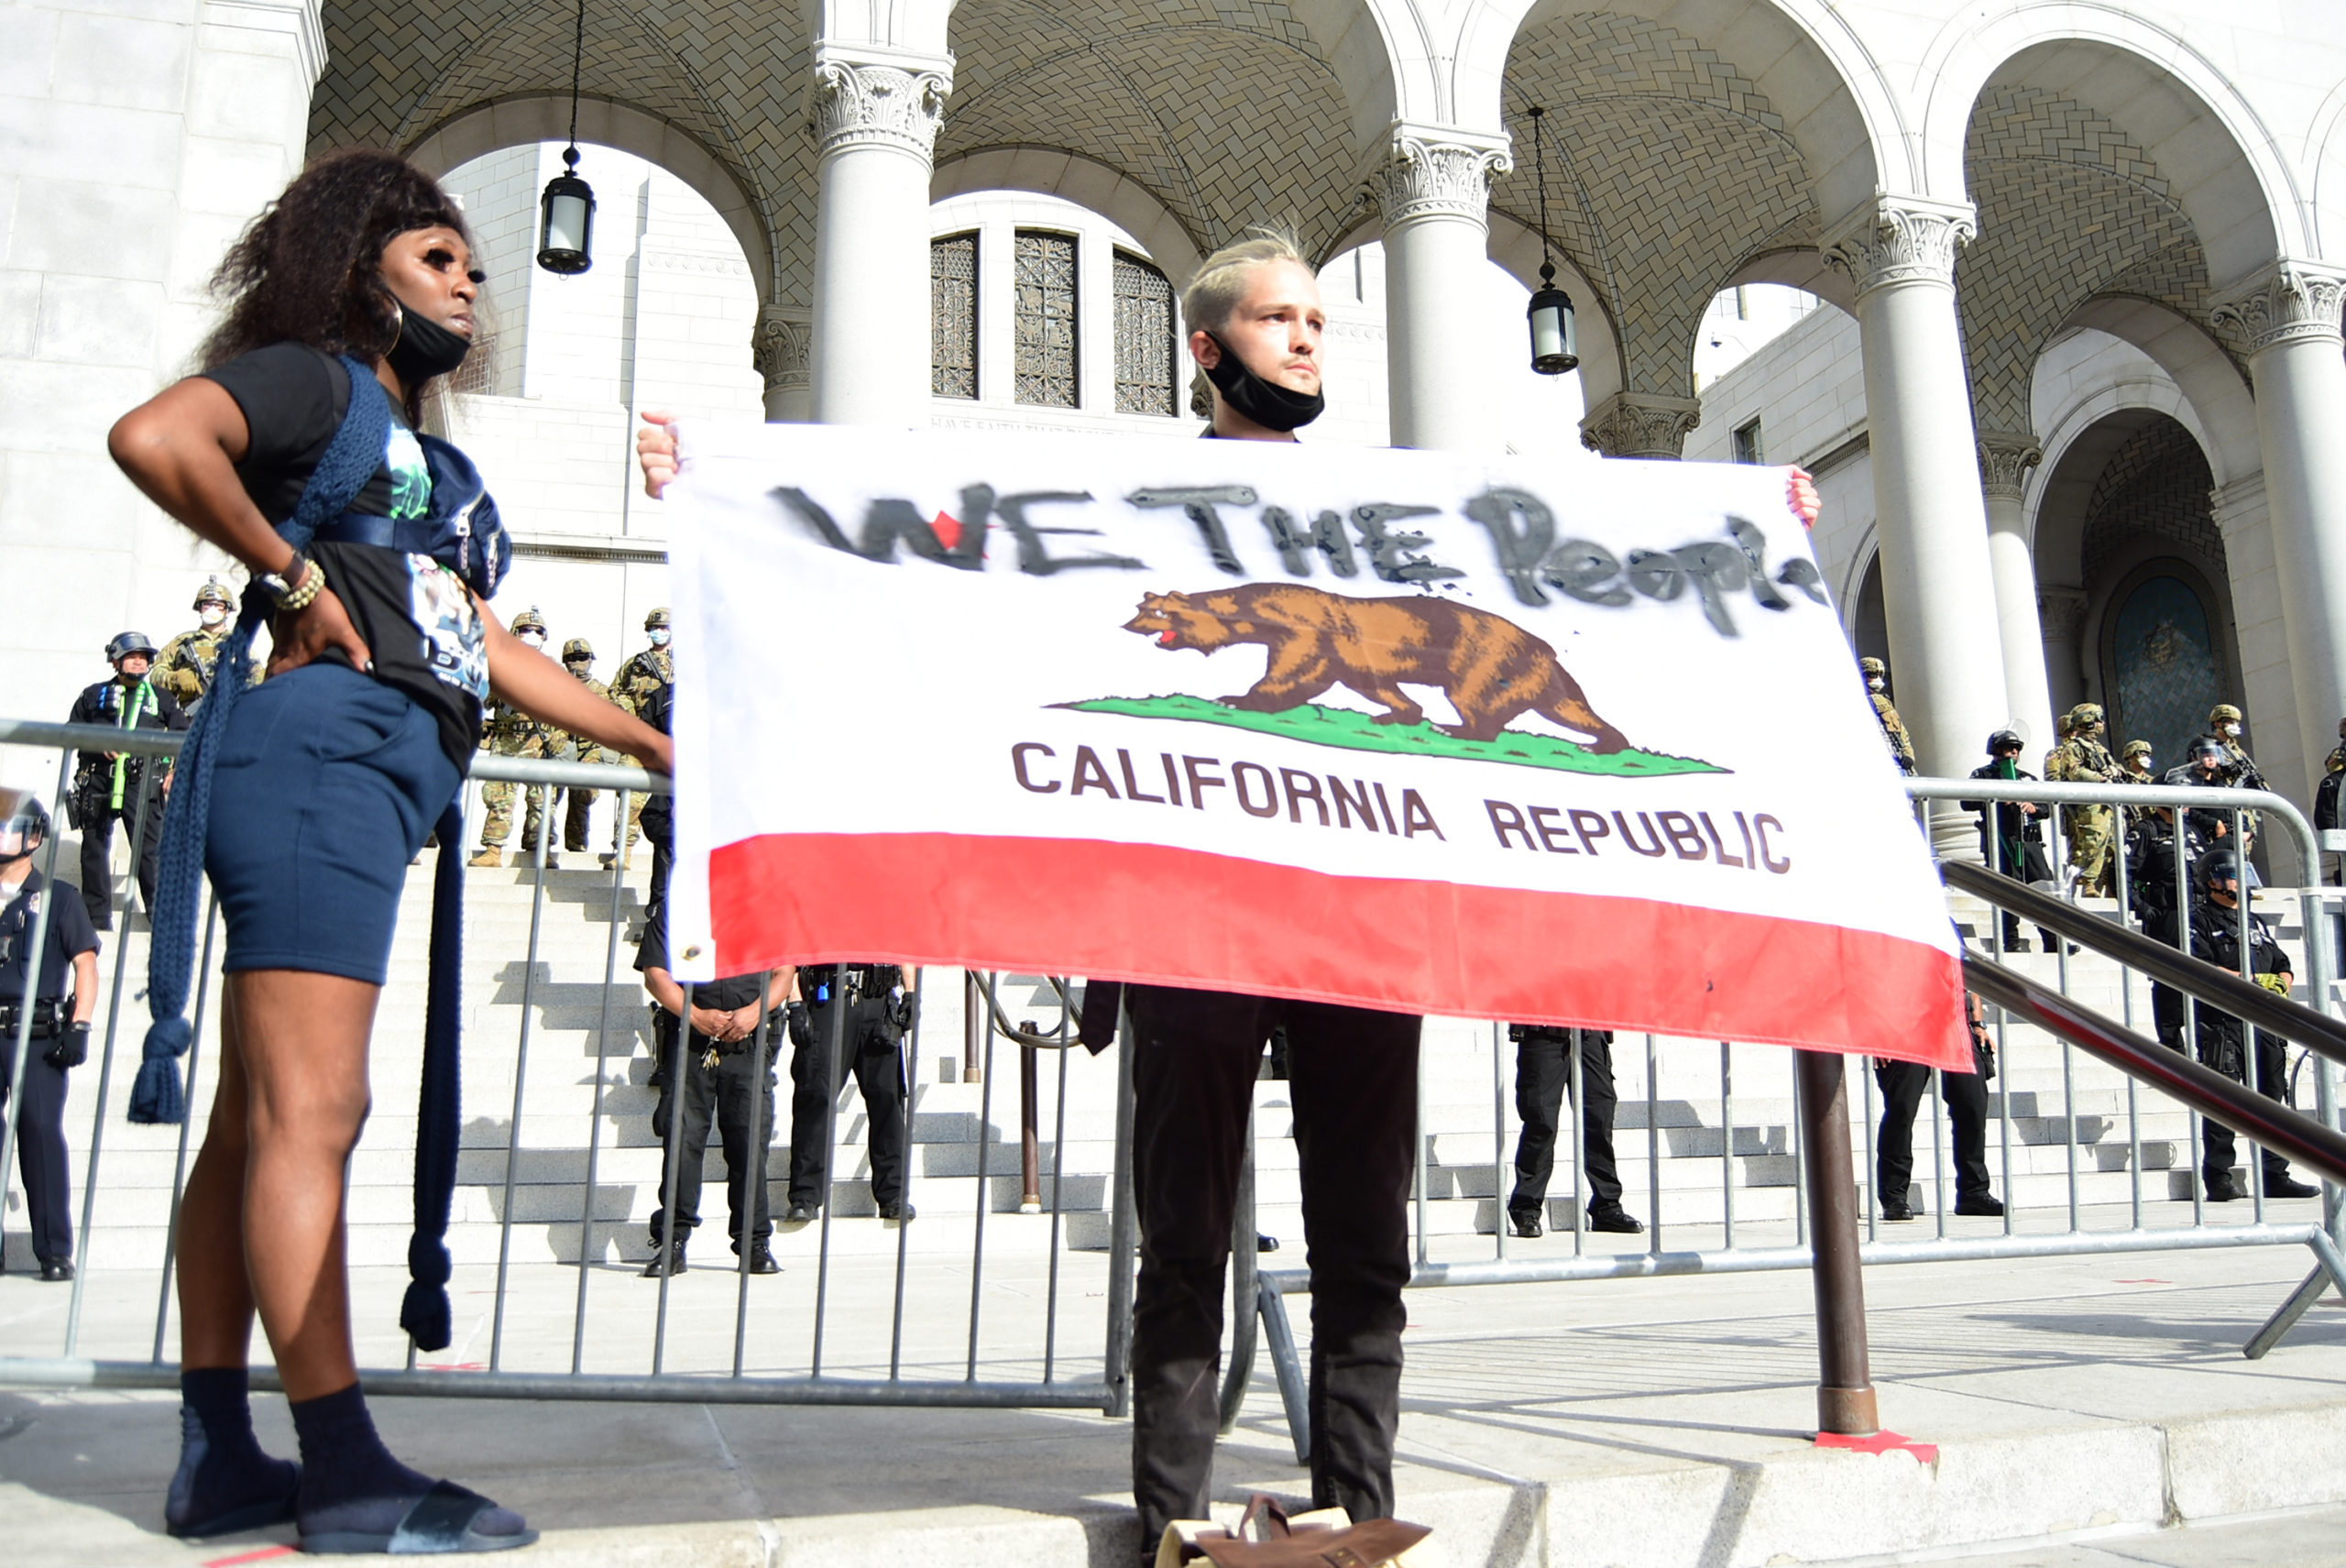 south-pasadena-news-05-31-2020-george-floyd-blm-black-lives-matter-protests-los-angeles-day-2-73